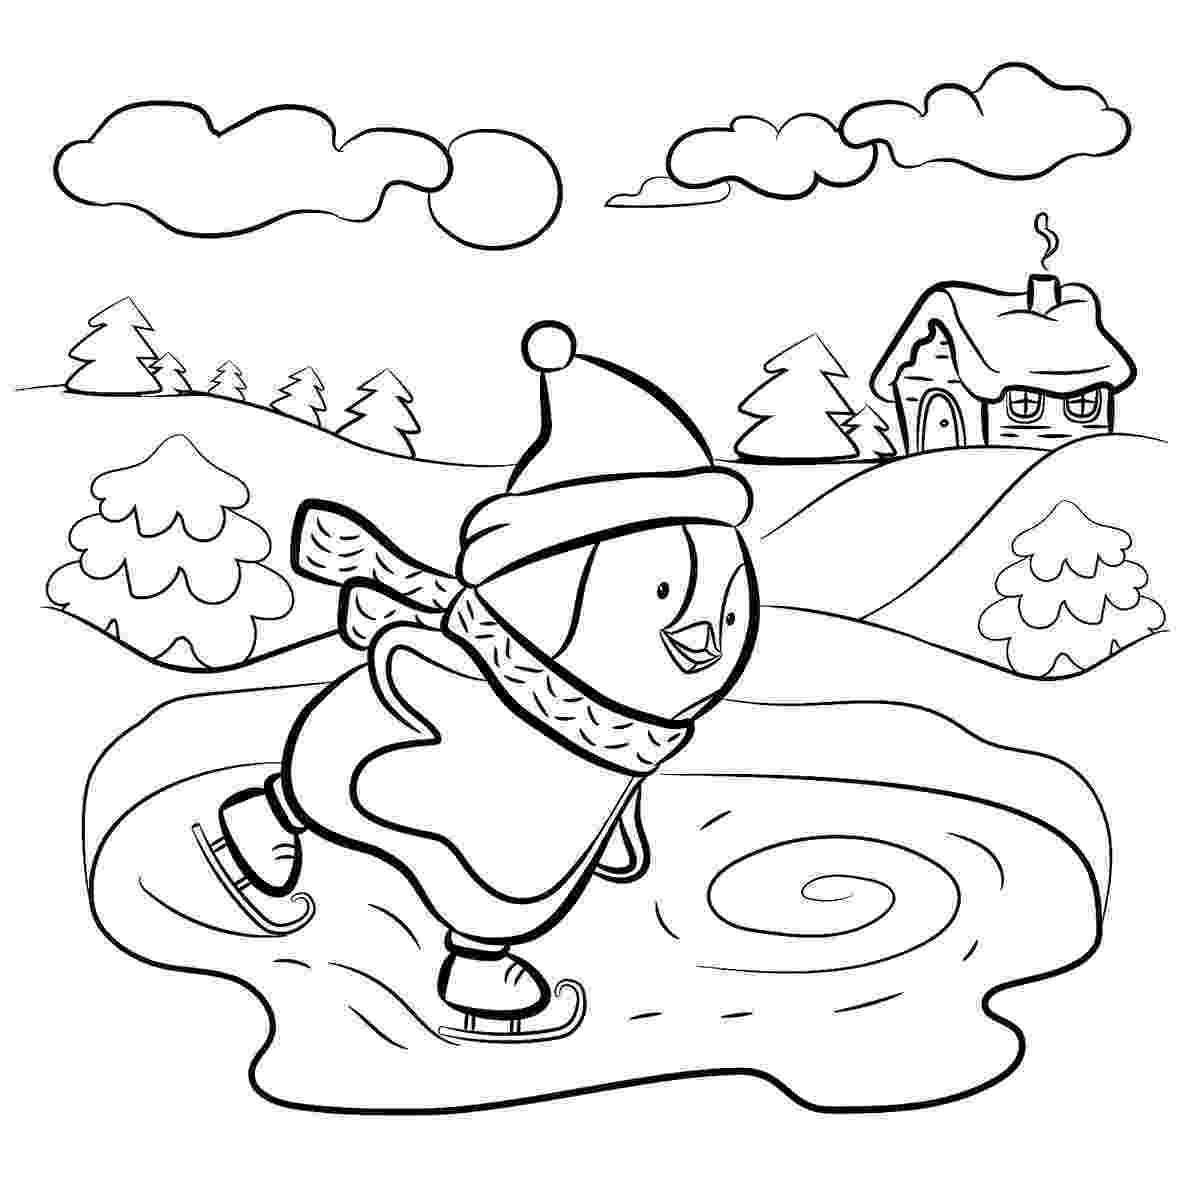 colouring sheets winter season and weather coloring pages momjunction sheets colouring winter